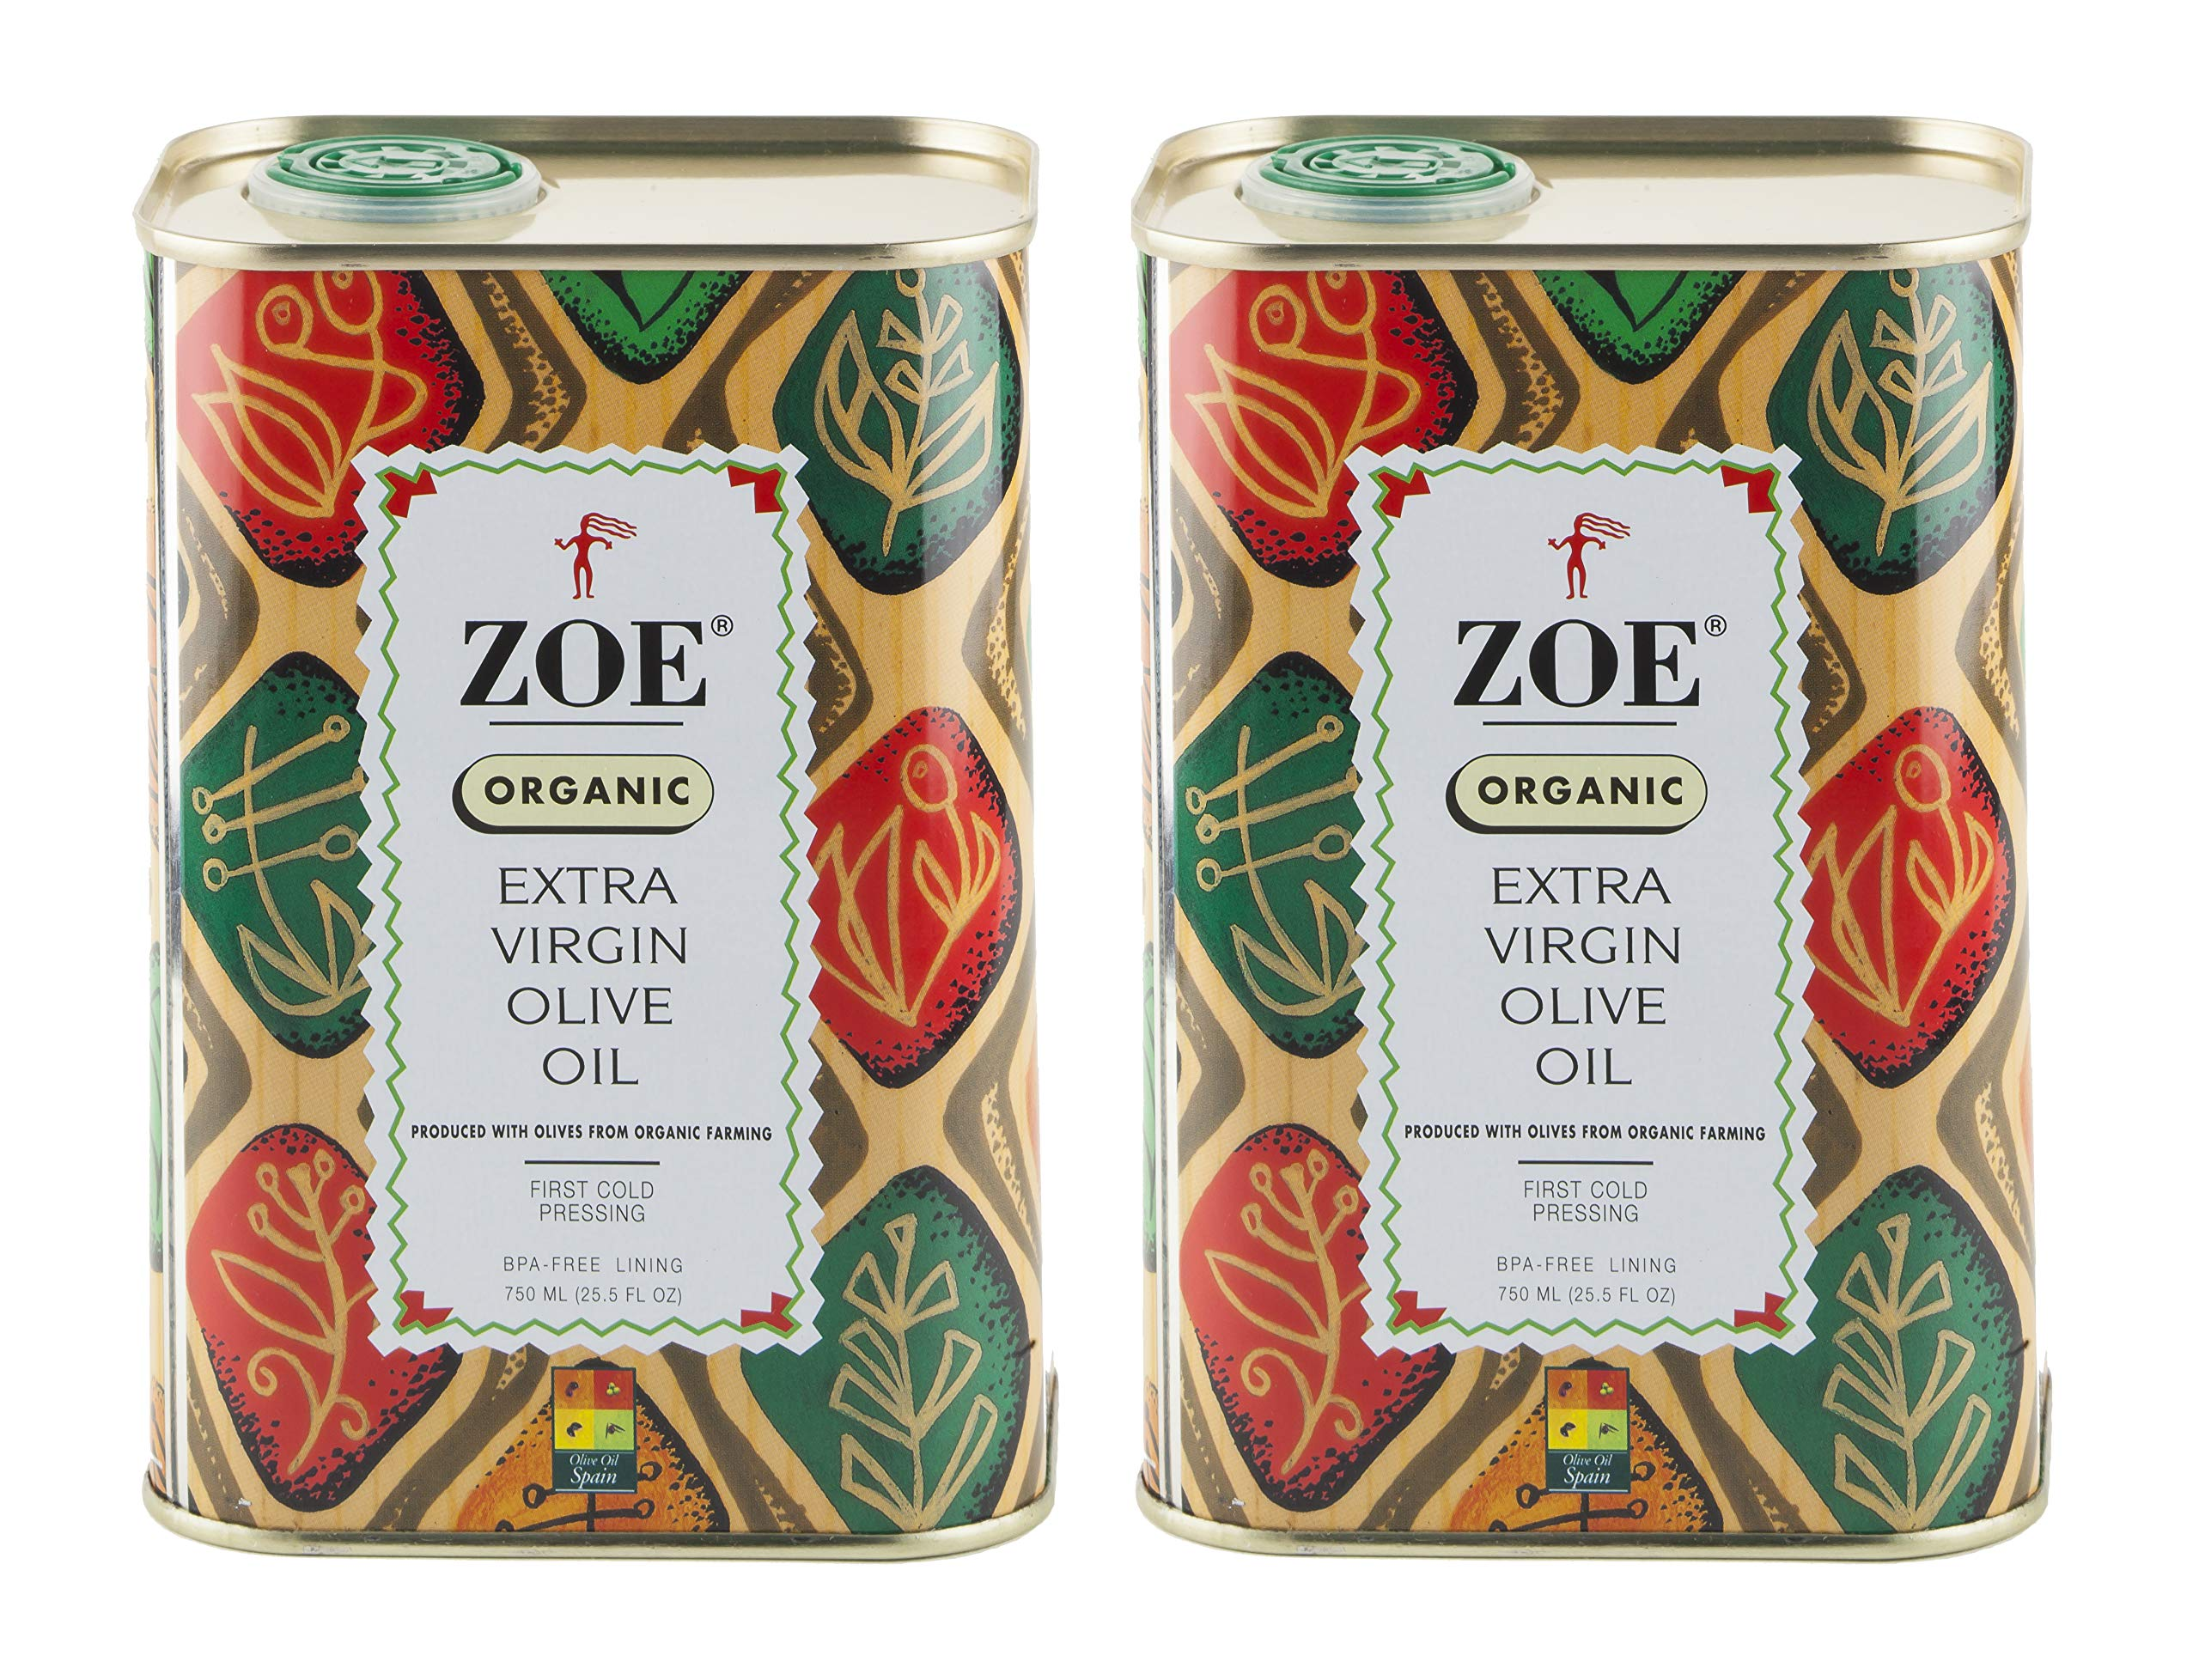 Zoe Organic Extra Virgin Olive Oil, 25.5 Ounce Tin (Pack of 2) by Zoe